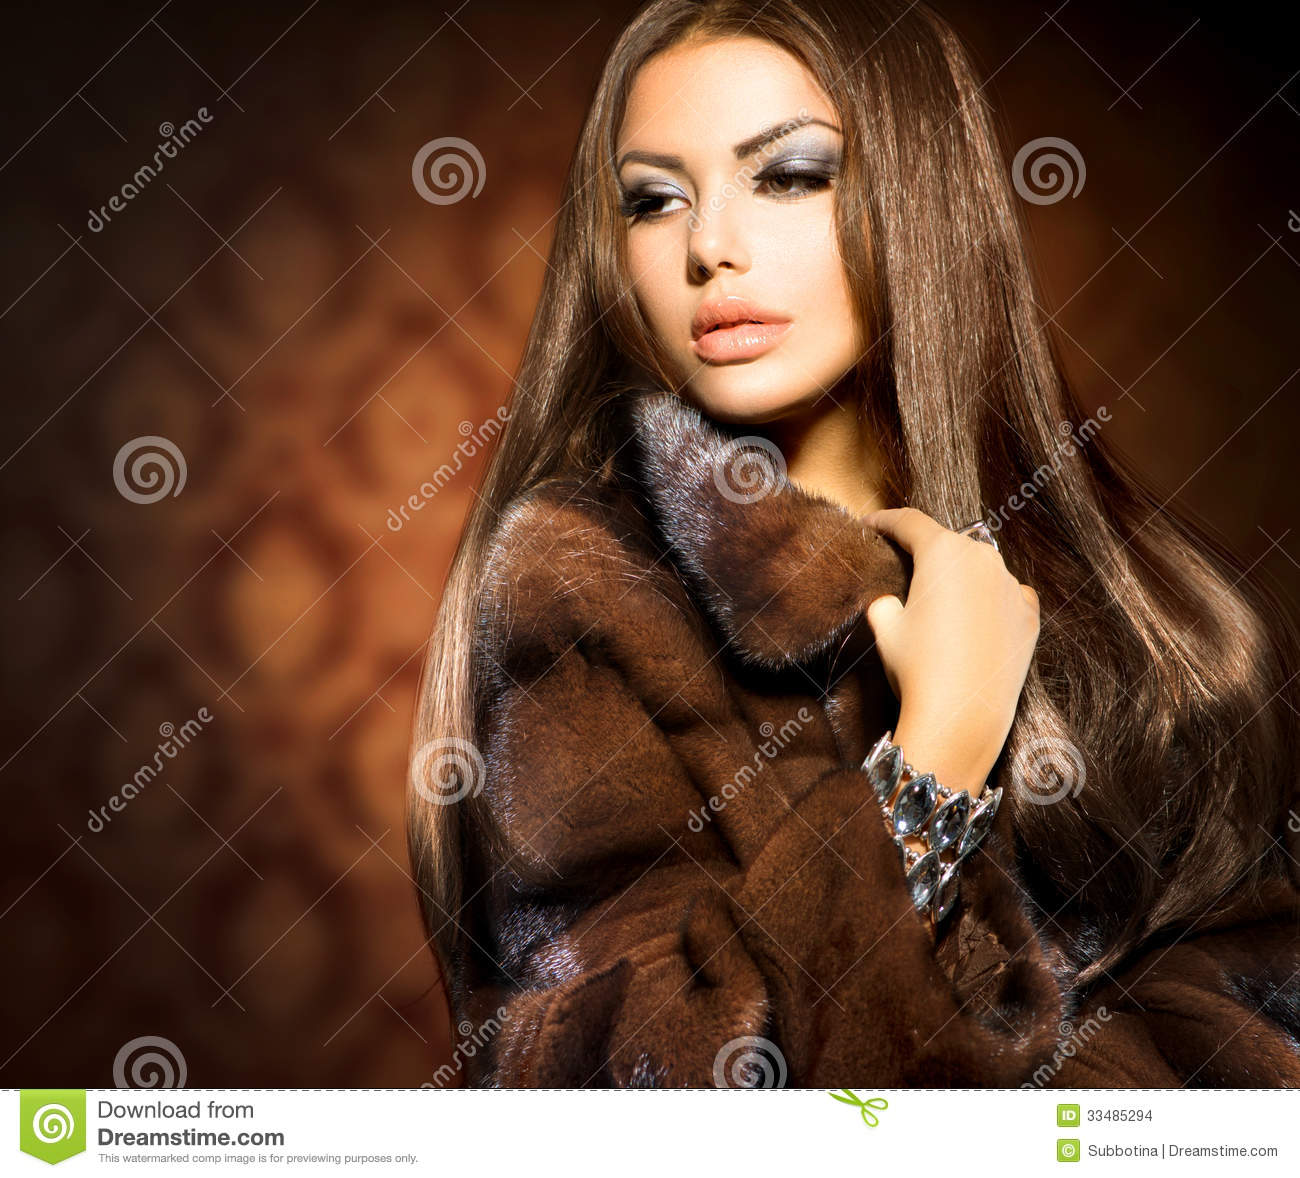 Model Girl In Mink Fur Coat Stock Images - Image: 33485294